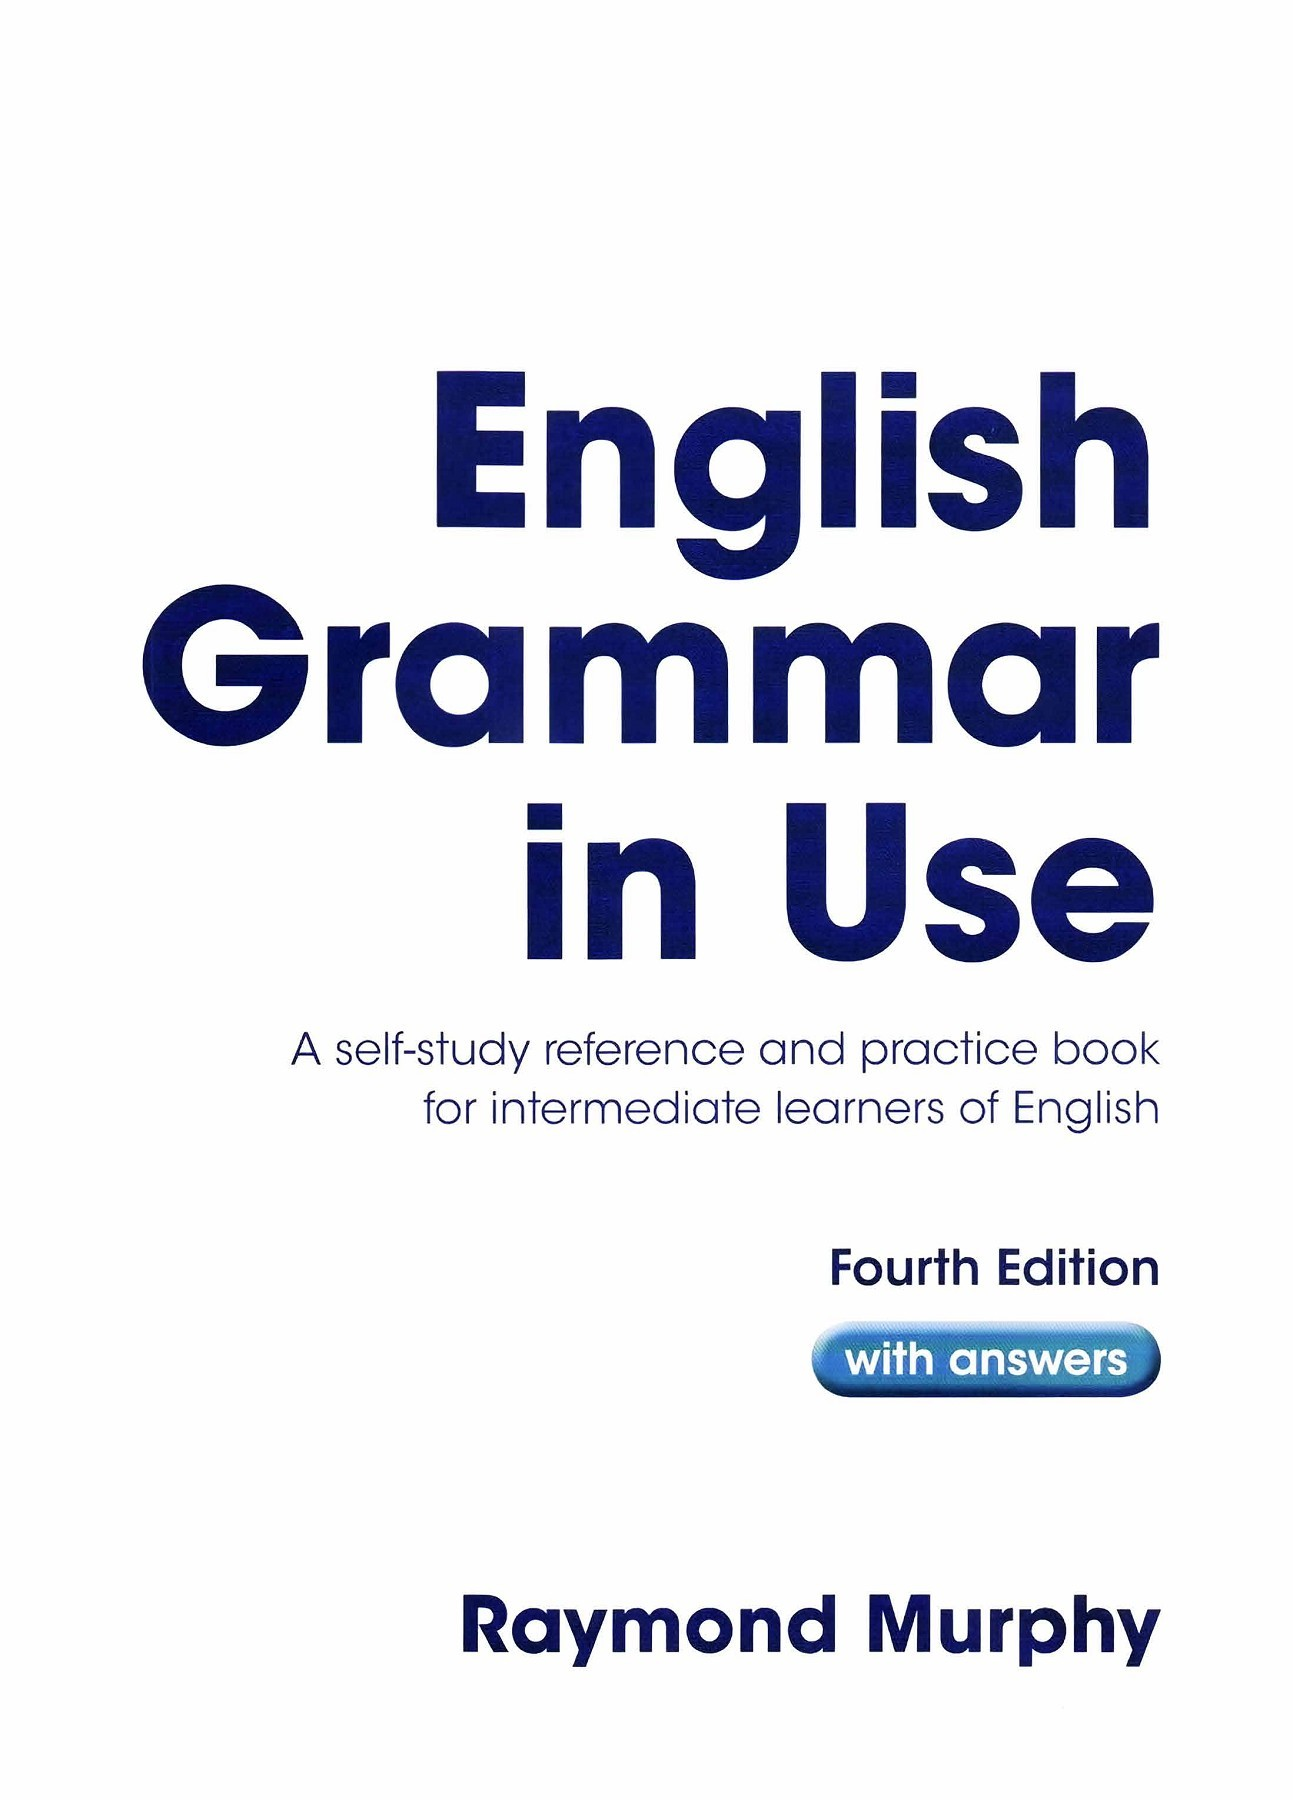 Descargar Libro English Grammar In Use English Grammar In Use 2012 4 Ed 2 Pages 1 50 Text Version